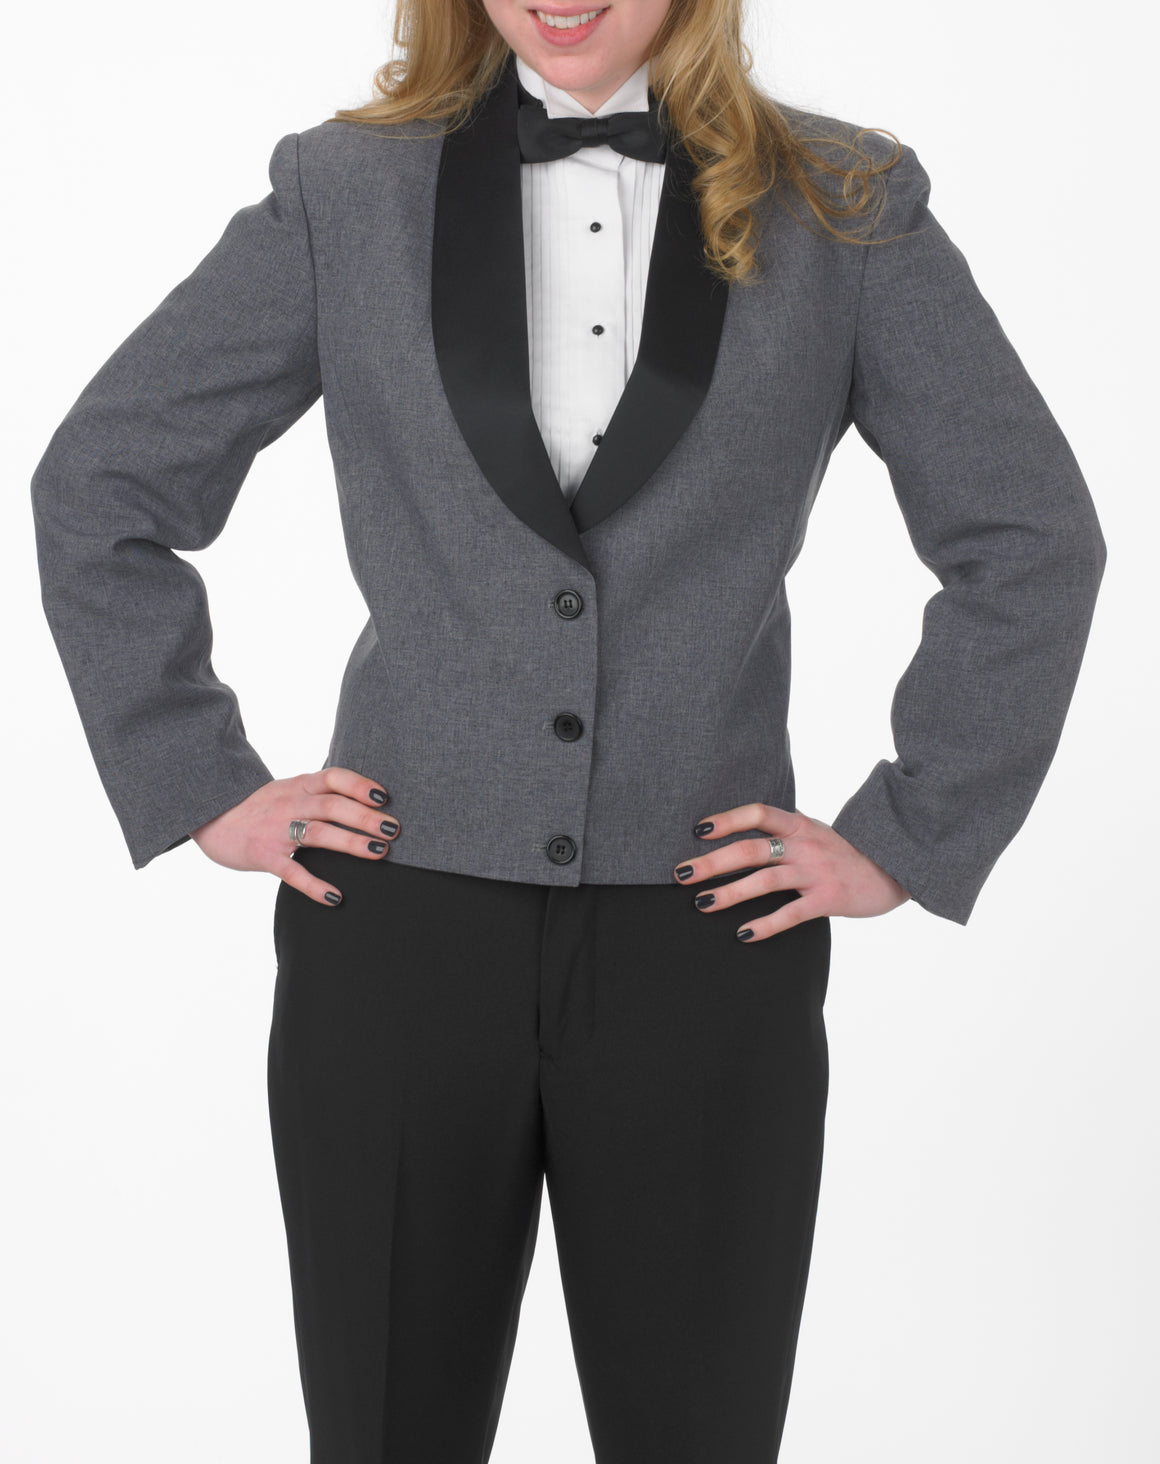 Women's Heather Gray Eton Jacket with Black Satin Shawl Lapel